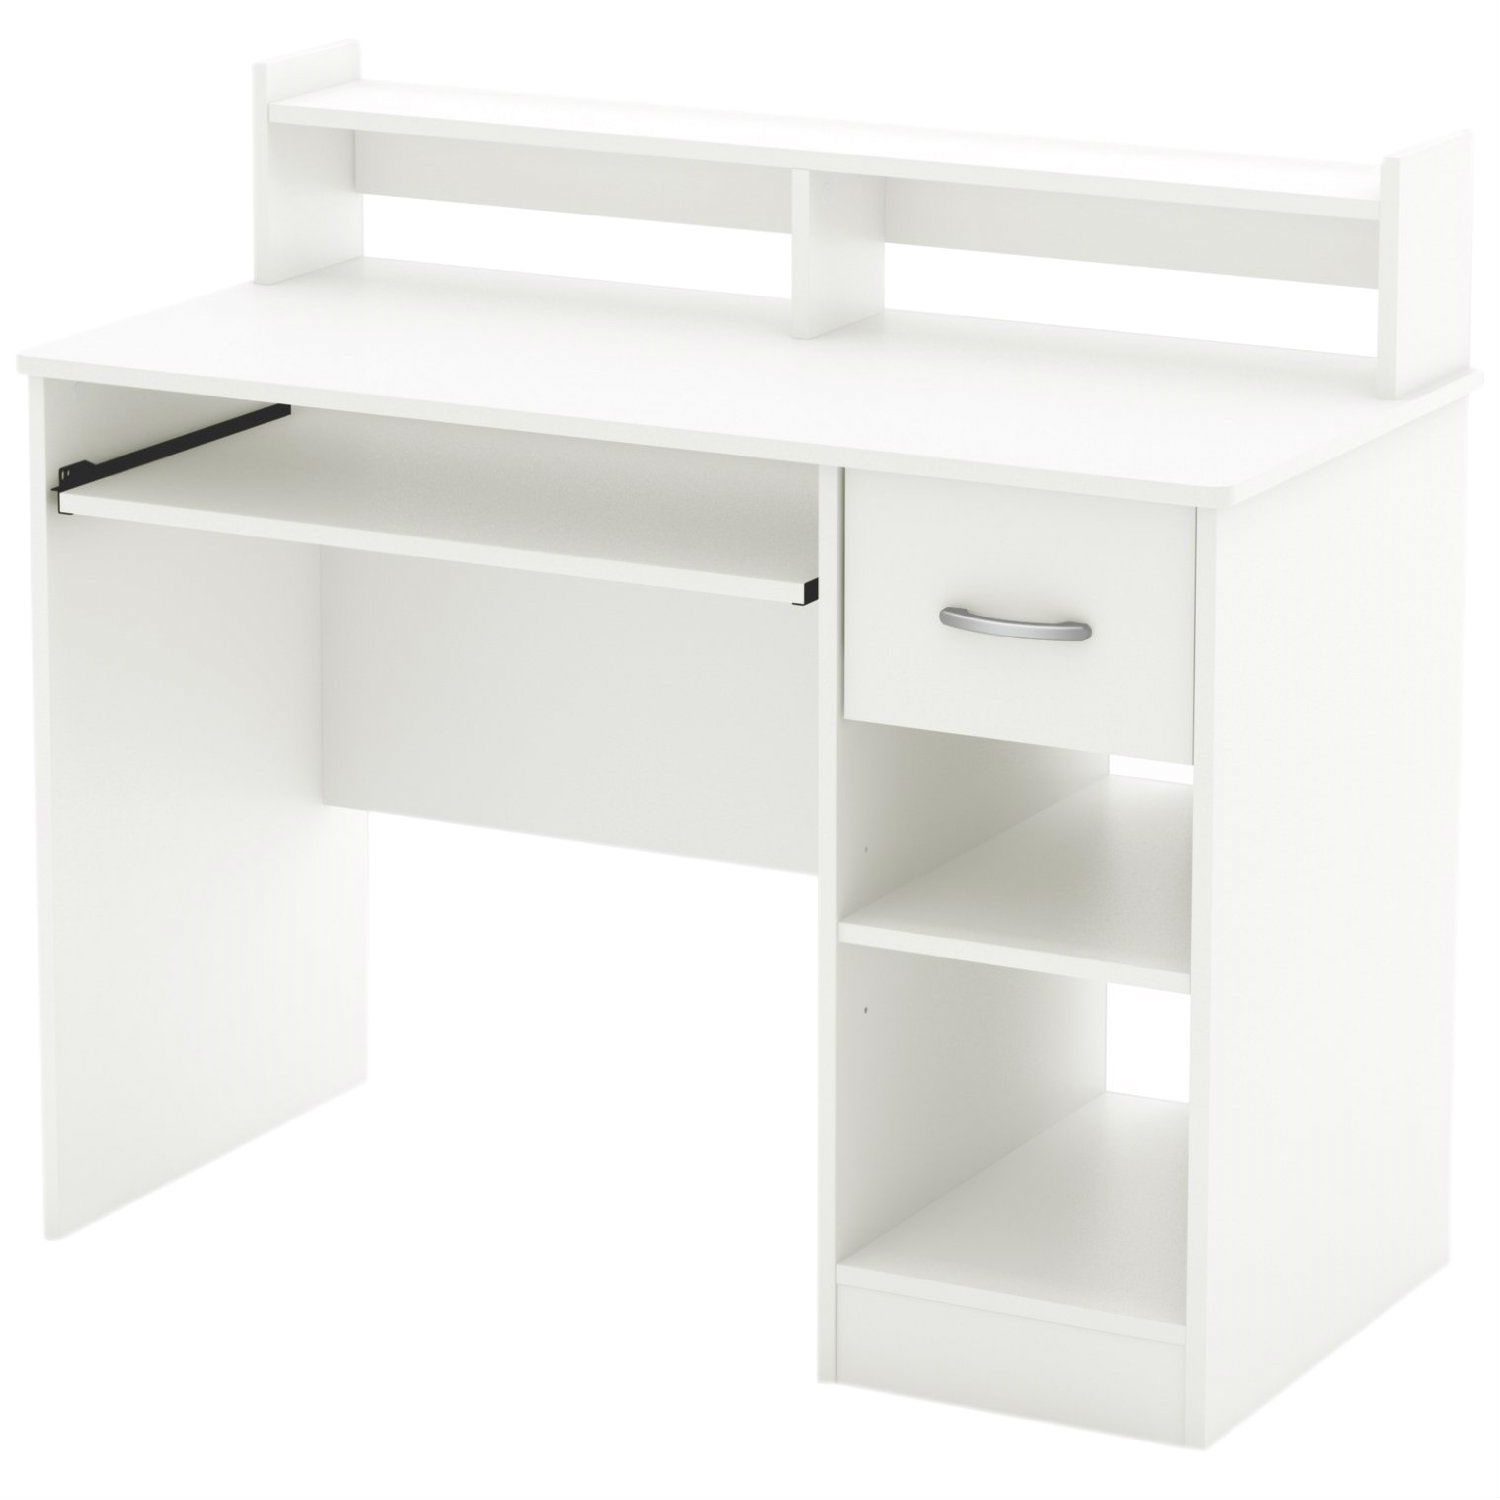 This Modern Computer Desk with Keyboard Tray in White Finish is the perfect answer to organizing clutter in your child's room. It features a compact design yet includes space for everything needed for schoolwork and projects. A low hutch offers shelving for books or keepsakes, and the desktop, plenty of room to spread out homework or a house laptop. Under it, you will find a keyboard tray, one practical drawer with a silver finish metal handles and a storage compartment divided by an adjustable shelf. for complete interior dimensions see spec sheet. Also available in Pure Back or Chocolate finish. The back is not laminated and the accessories are not included.